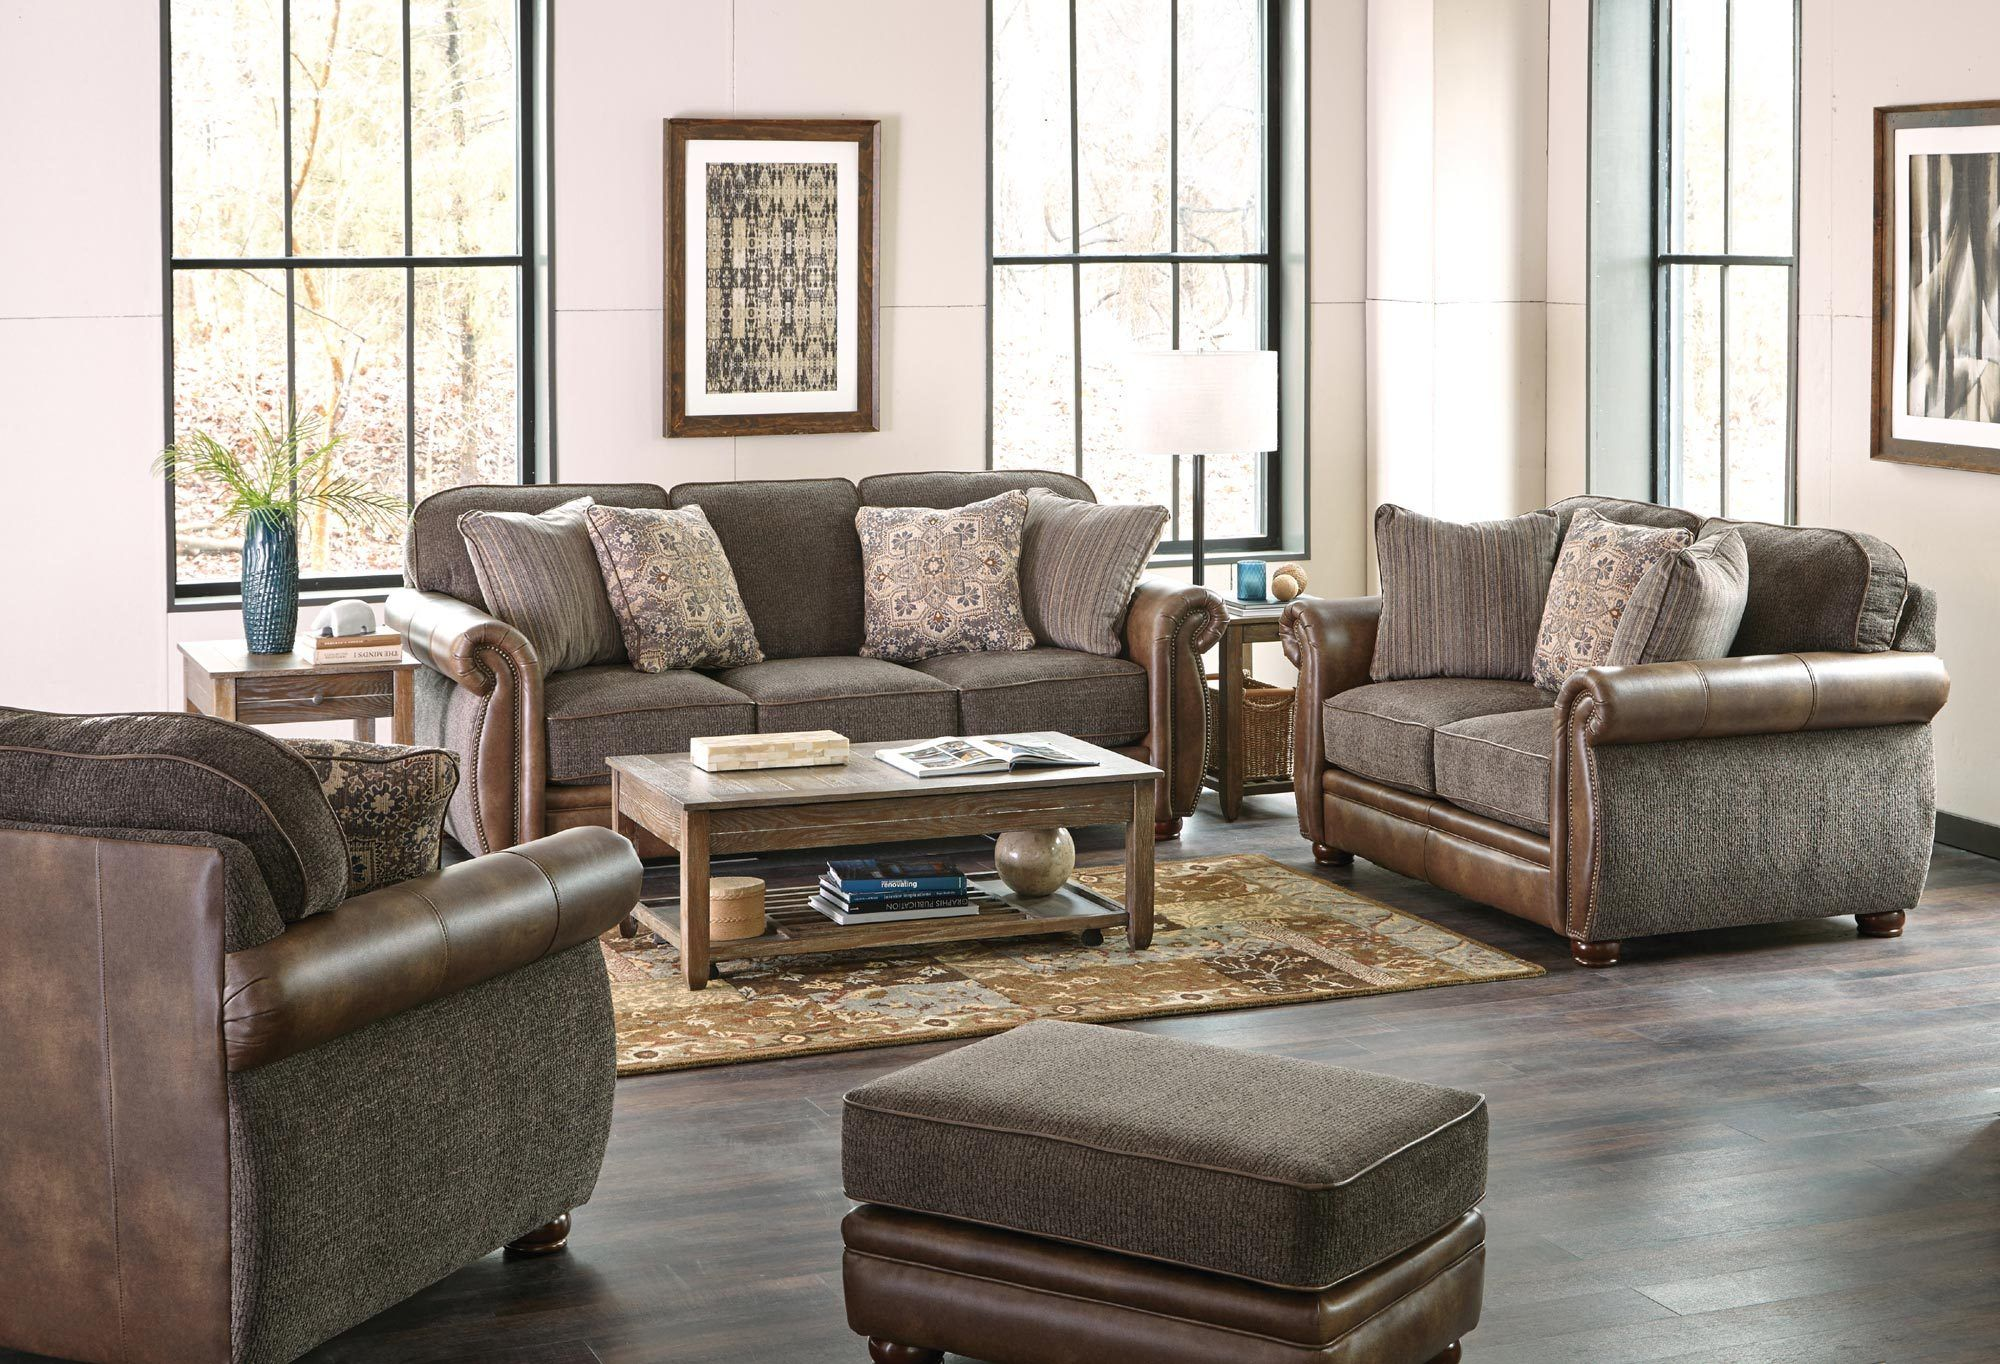 Pennington Sofa Set in Pewter Jackson Furniture